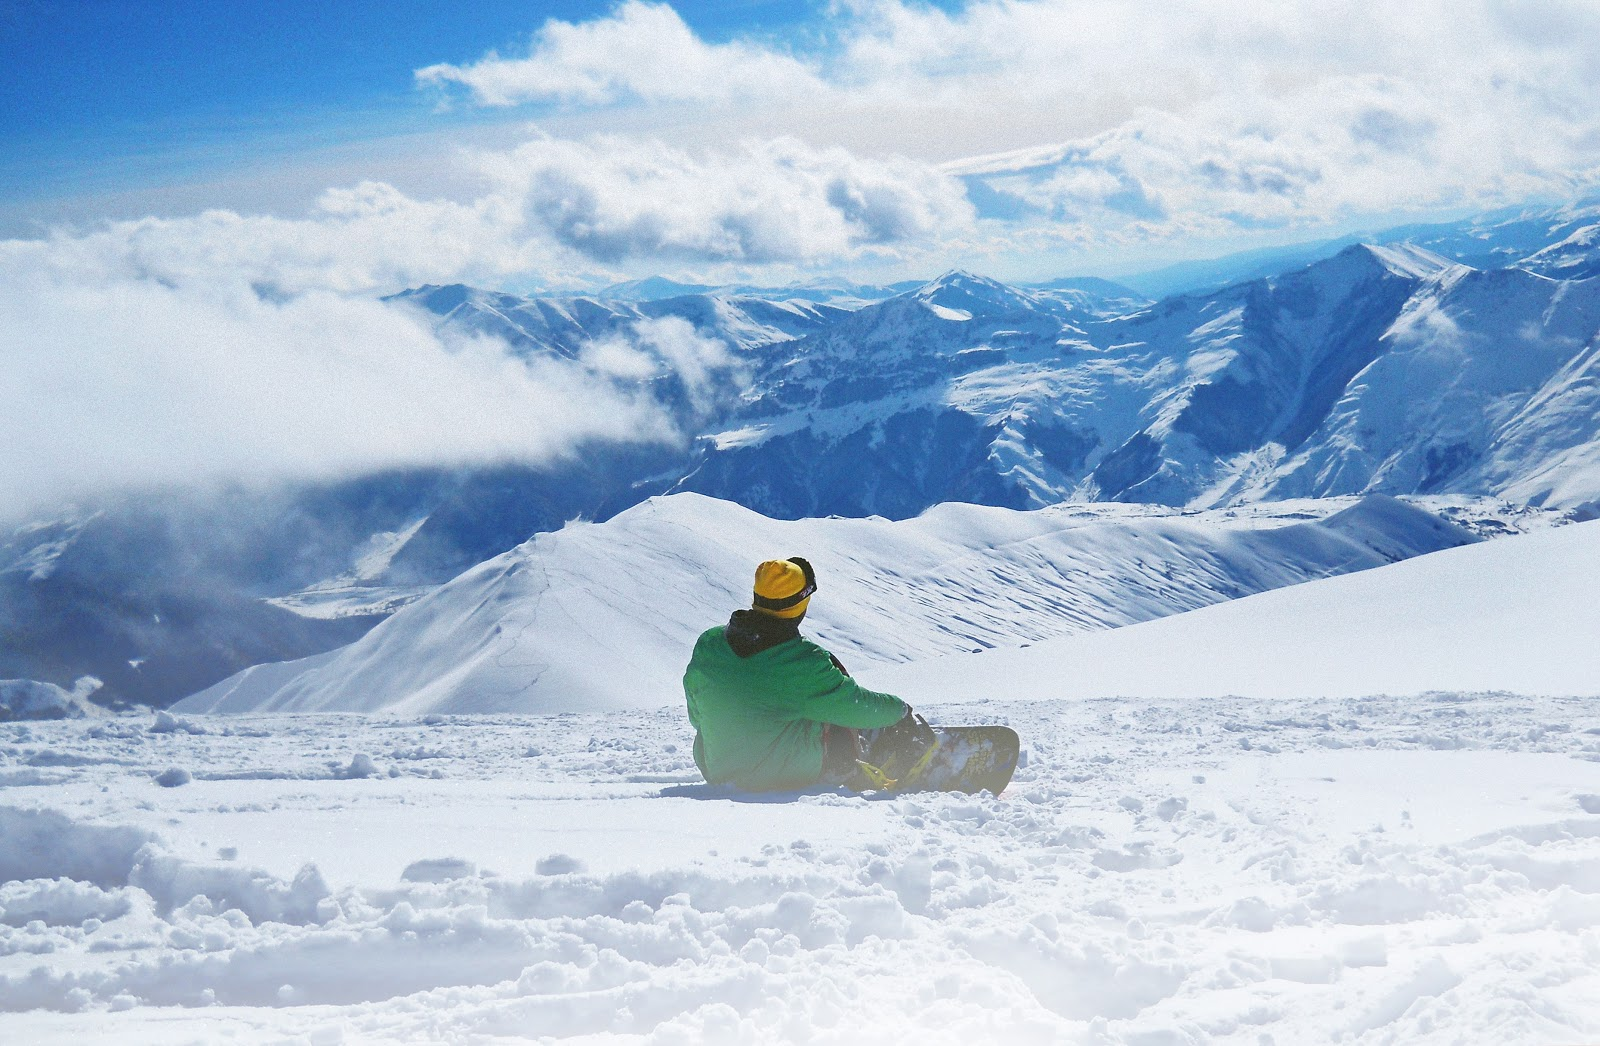 person sitting with snowboarding equipment on big bear mountain